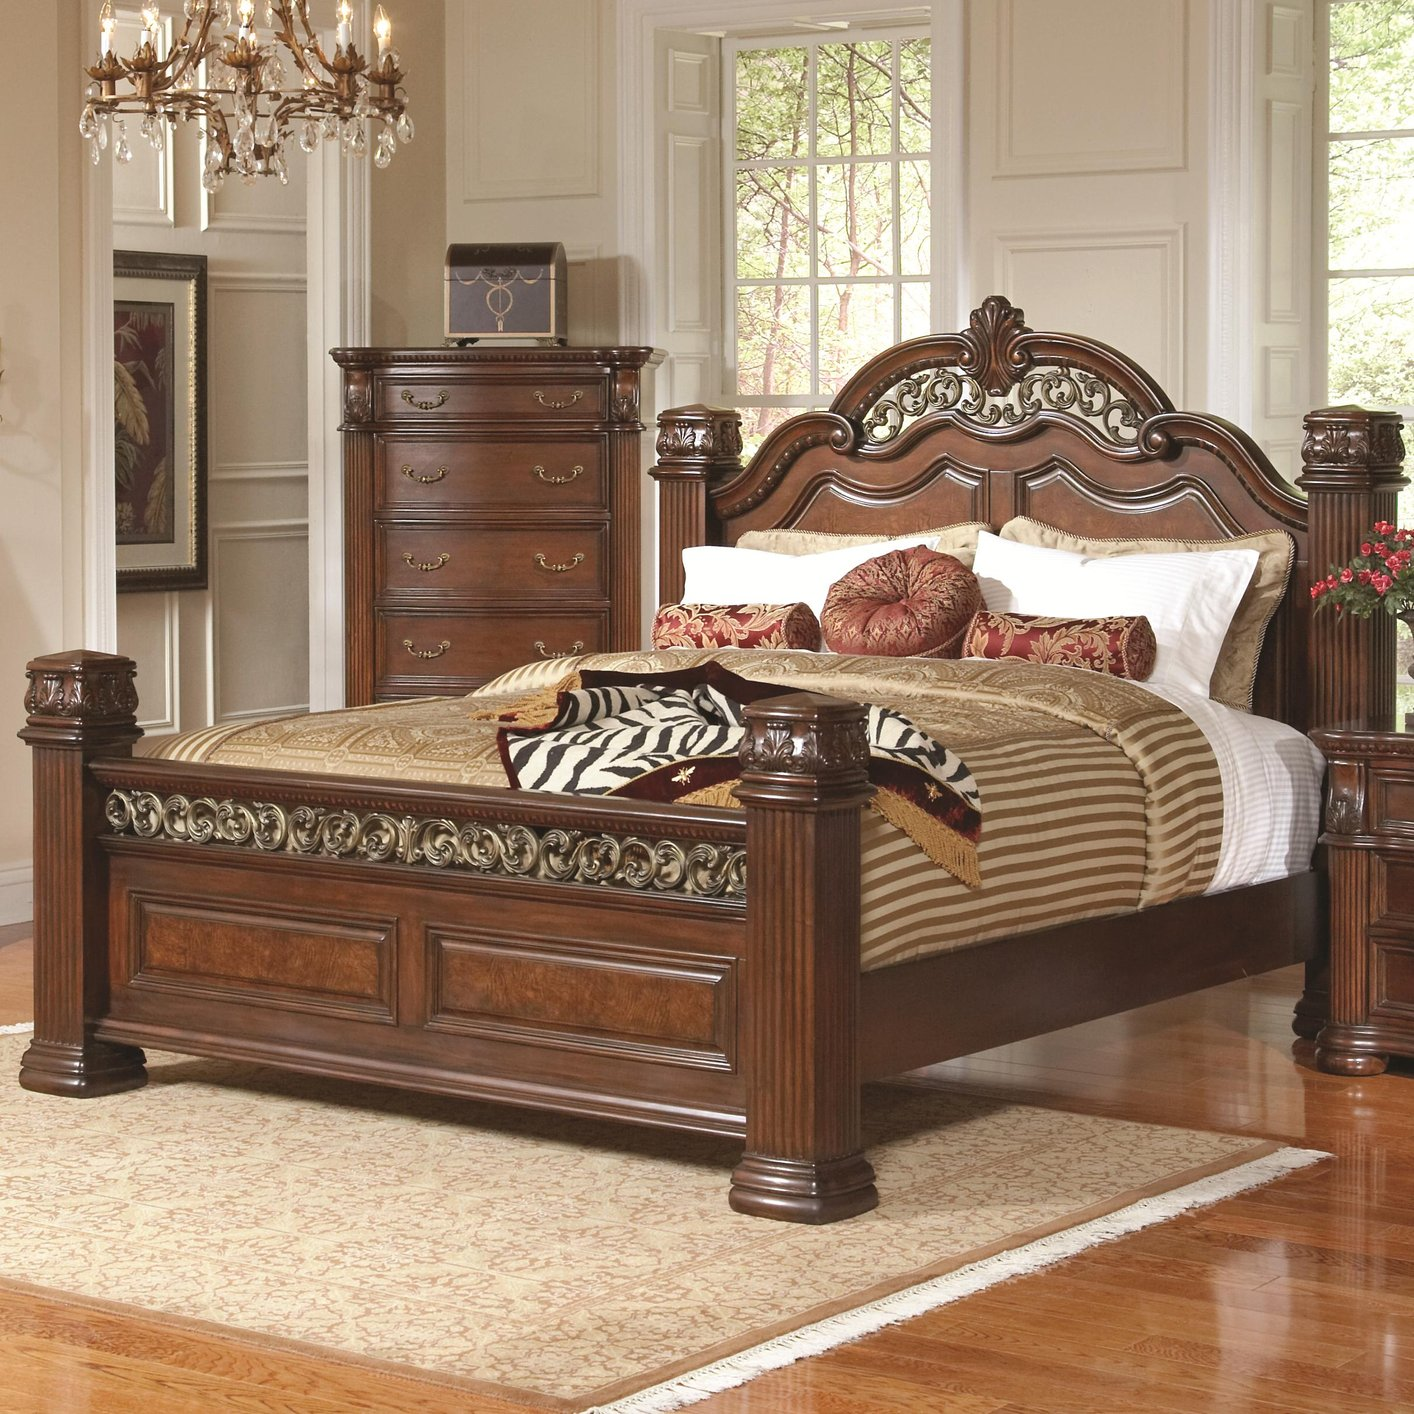 find california king size bed for to enjoy an affordable yet